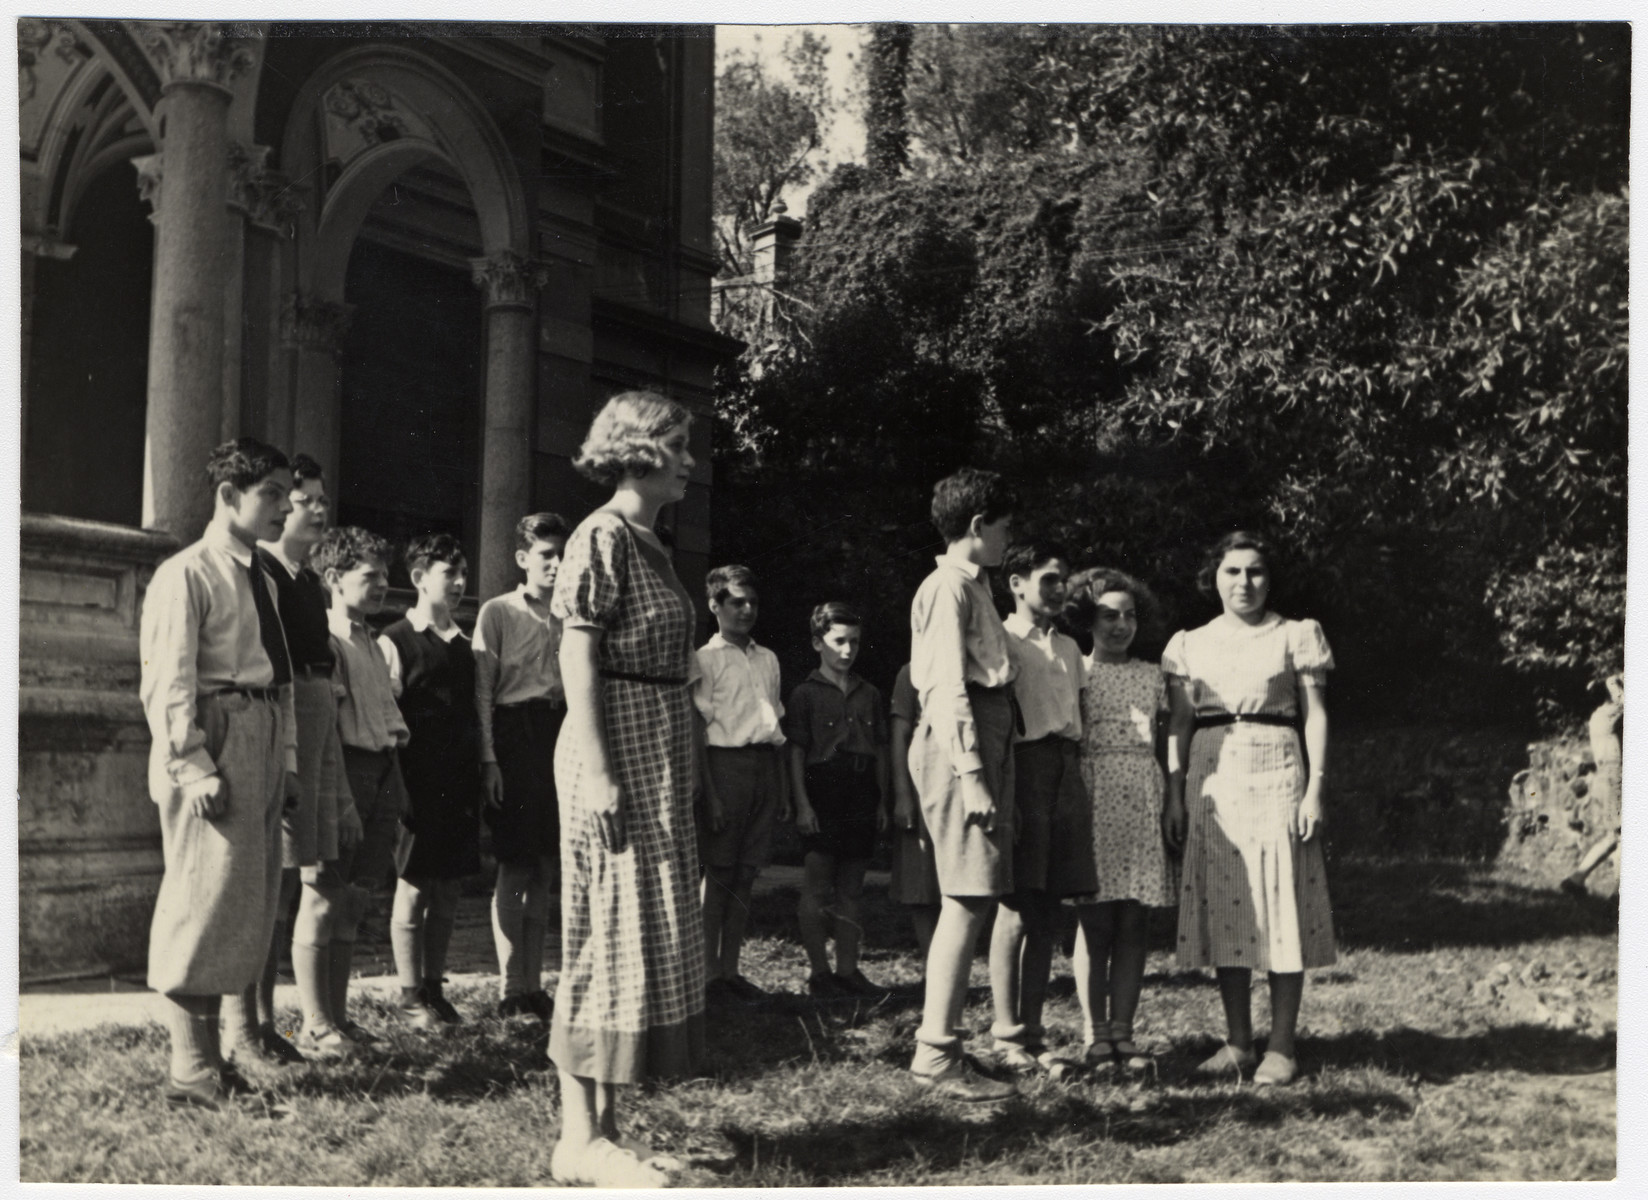 Students at the Mediterranean School in Recco, Italy line up outside on the grounds of the school.